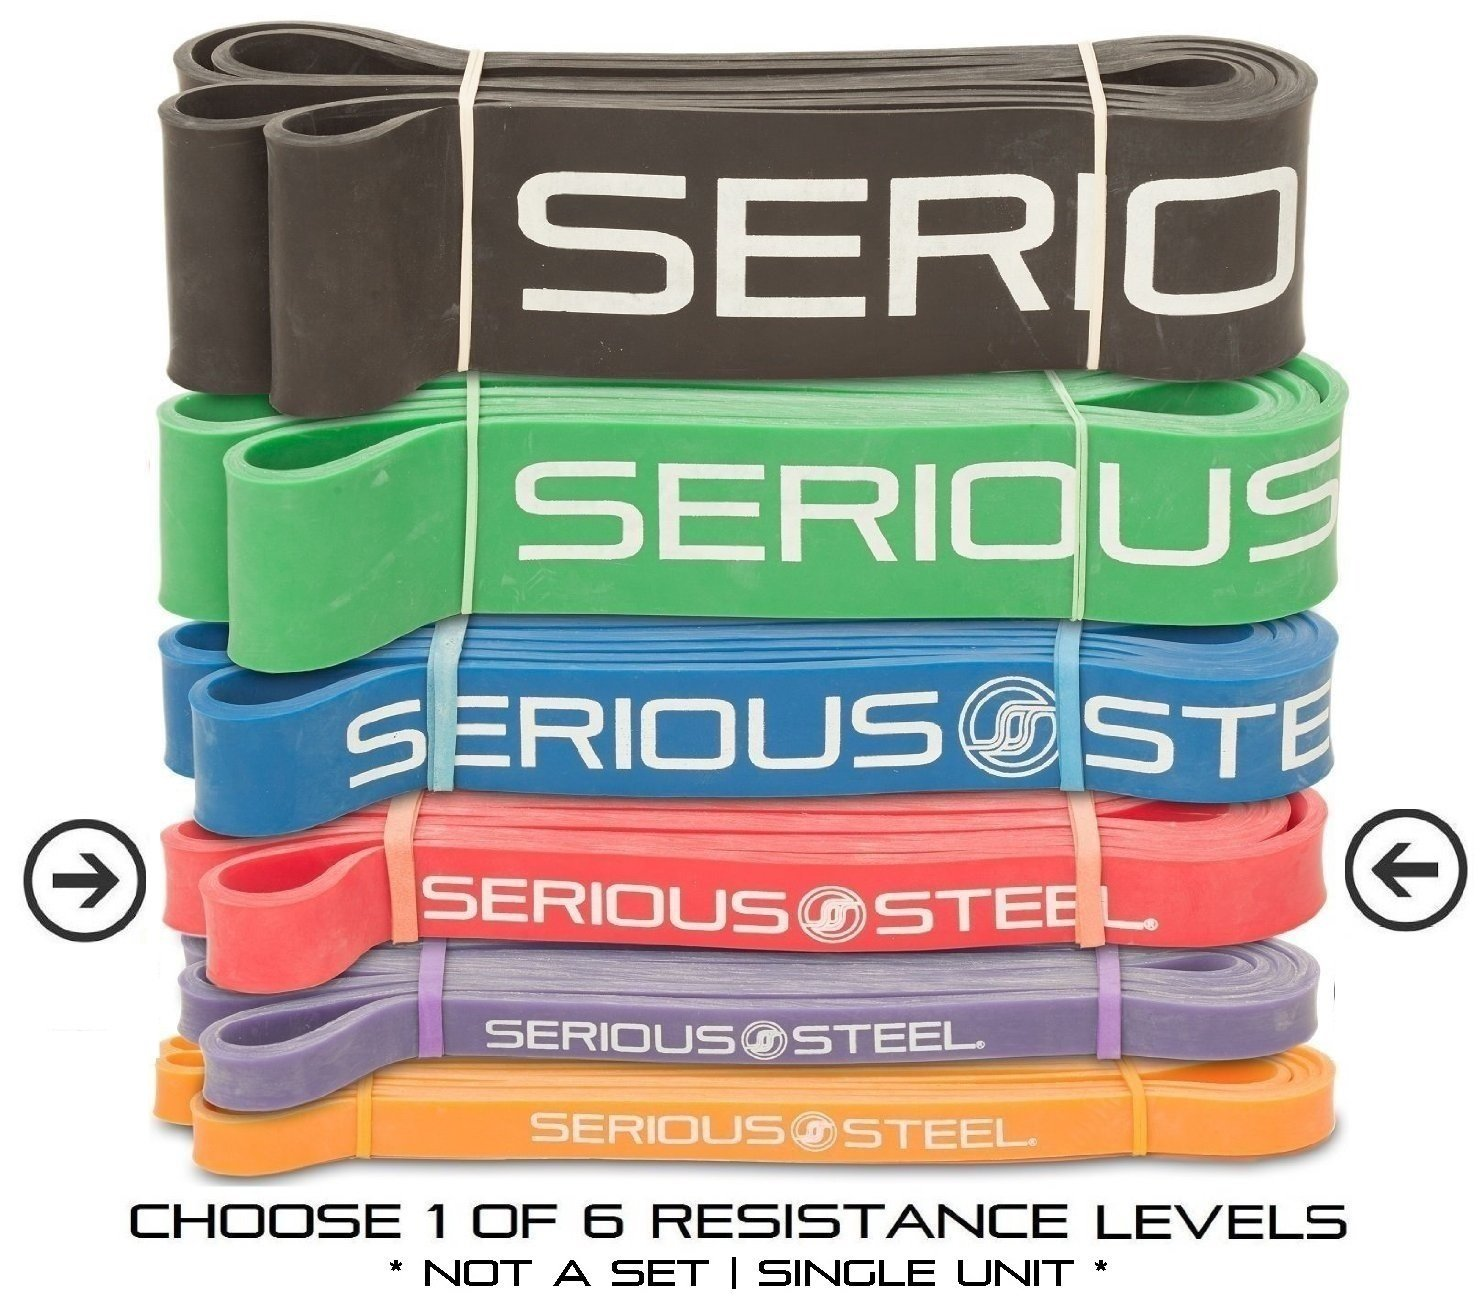 Serious Steel Fitness Red - #2 Monster Mini Pull-up Assist & Resistance Band (Size: 13/16'' x 4.5mm Resistance: 10-50lbs) by Serious Steel Fitness (Image #1)